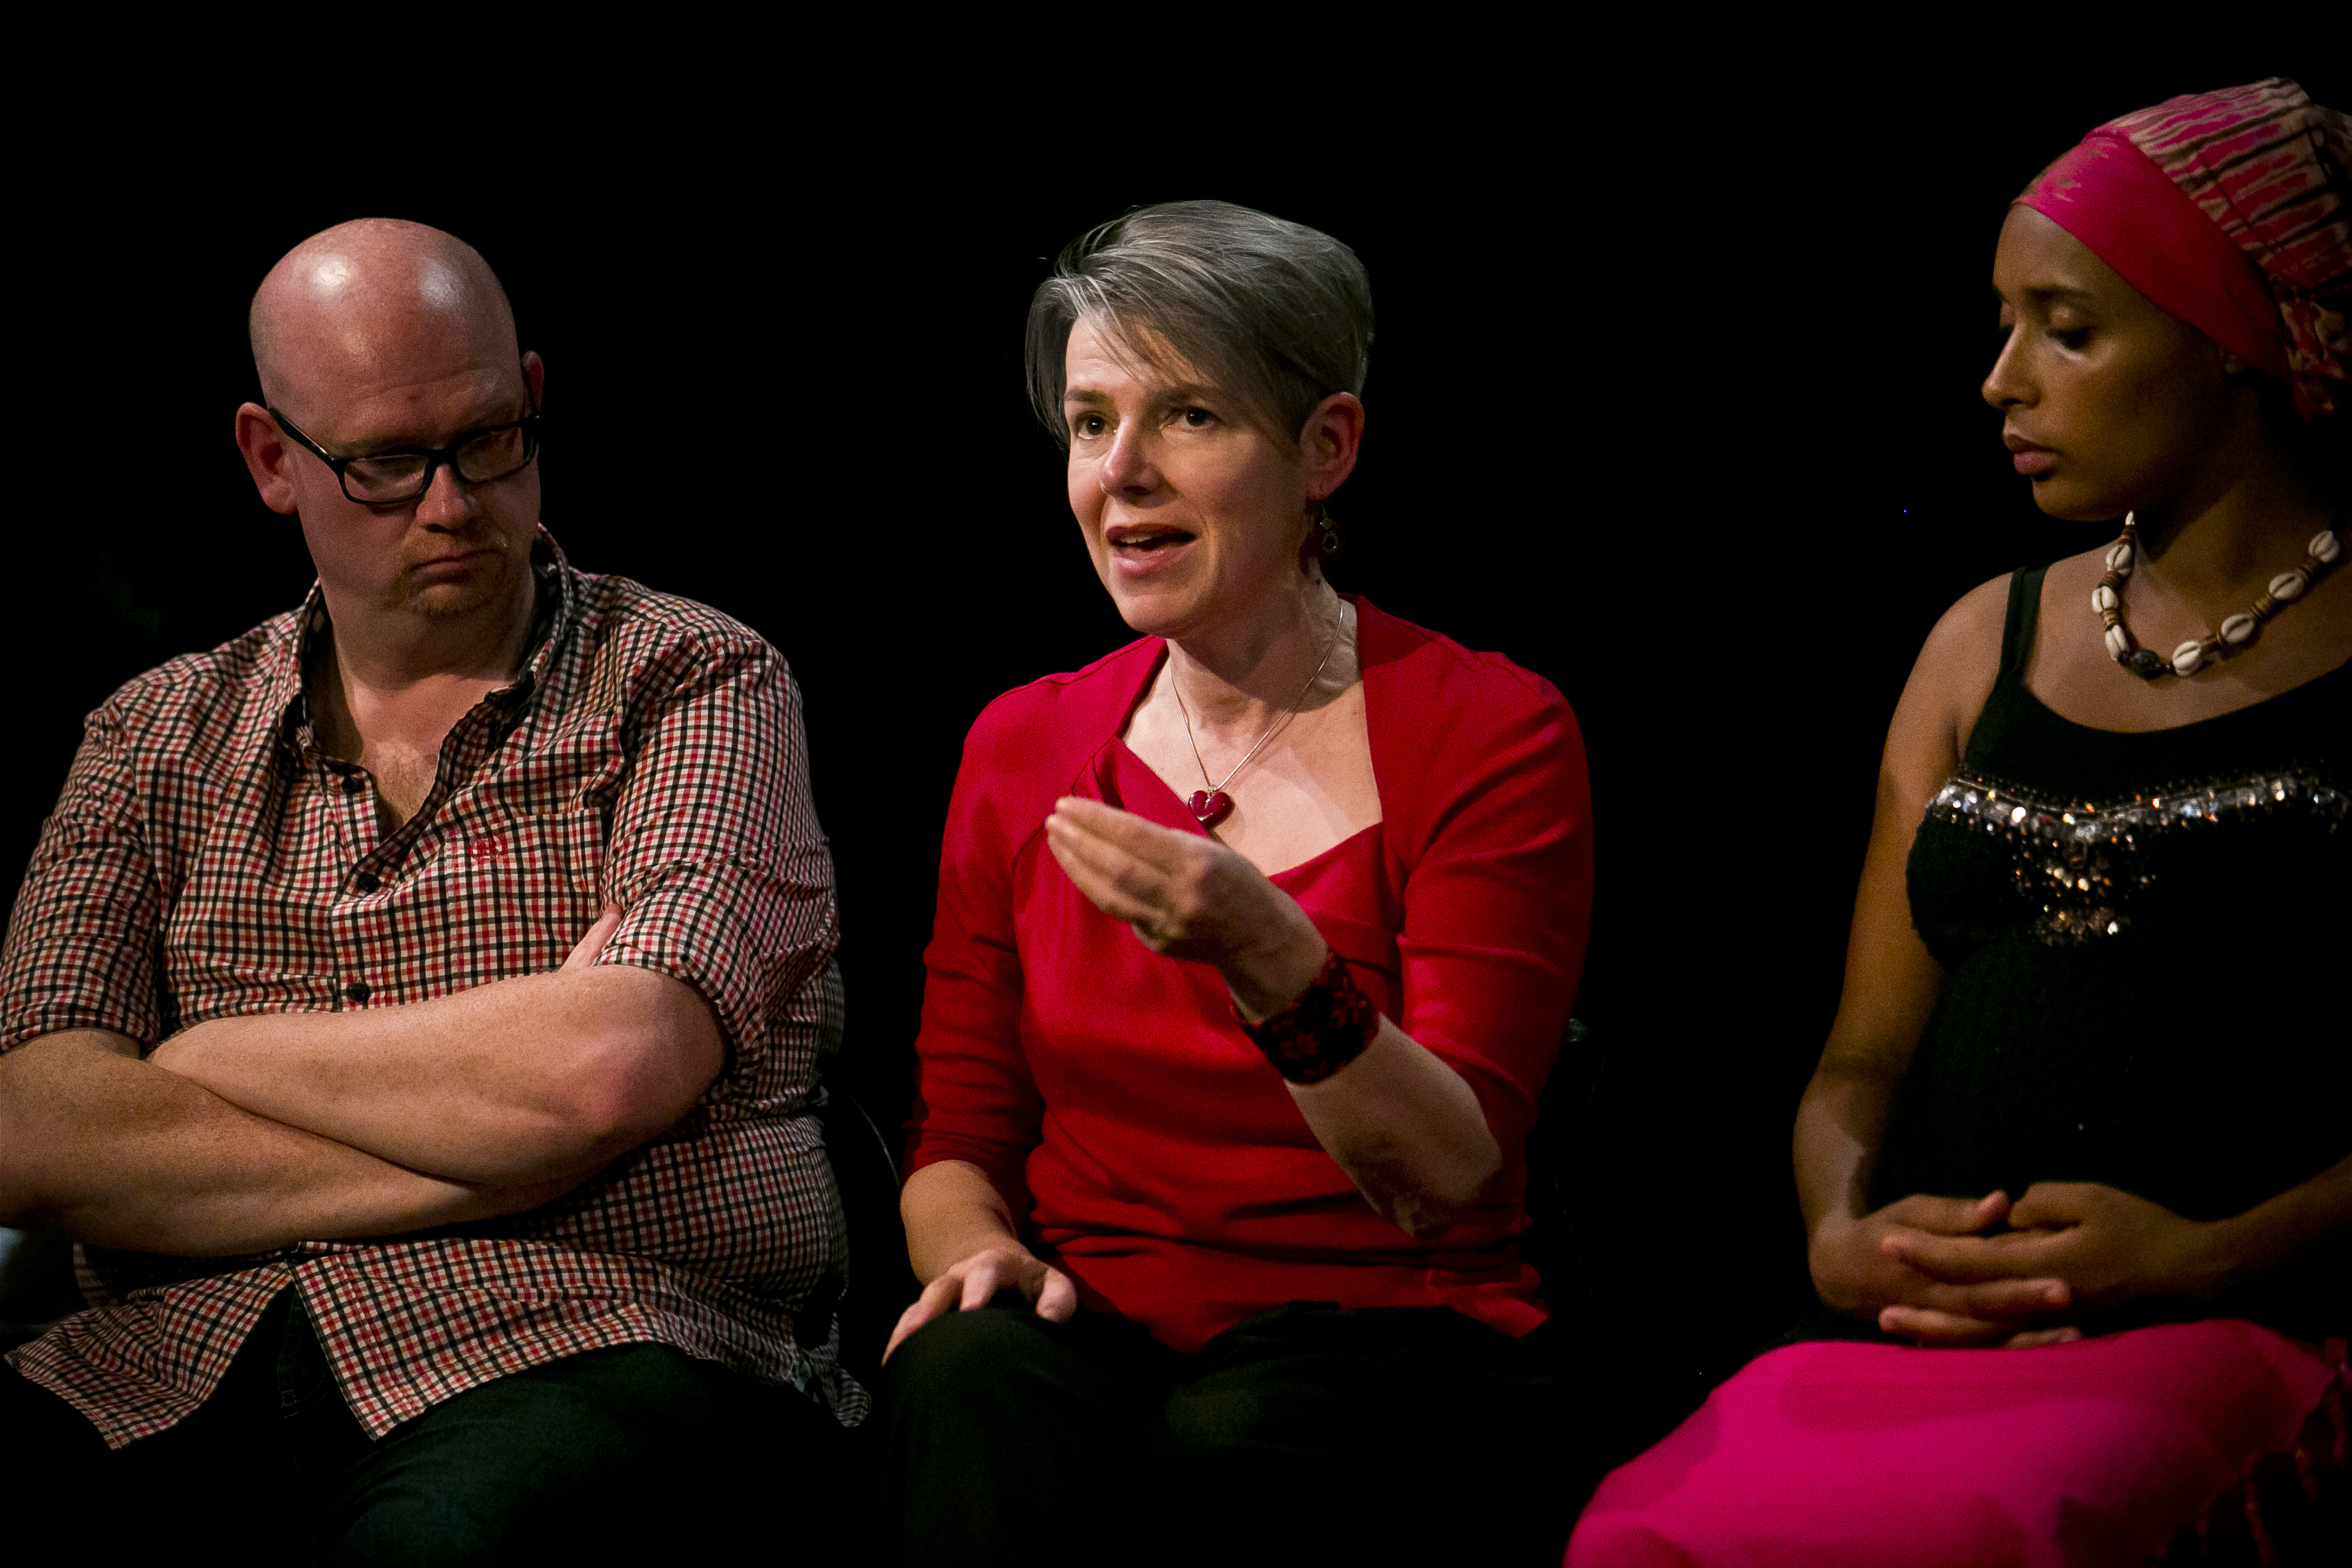 Playwrights David Leddy and Rona Munro and storyteller Mara Menzies during Playwrights' Studio's discussion Feminism is the New Black at the Traverse Theatre in August 2014. Photographer: Eoin Carey